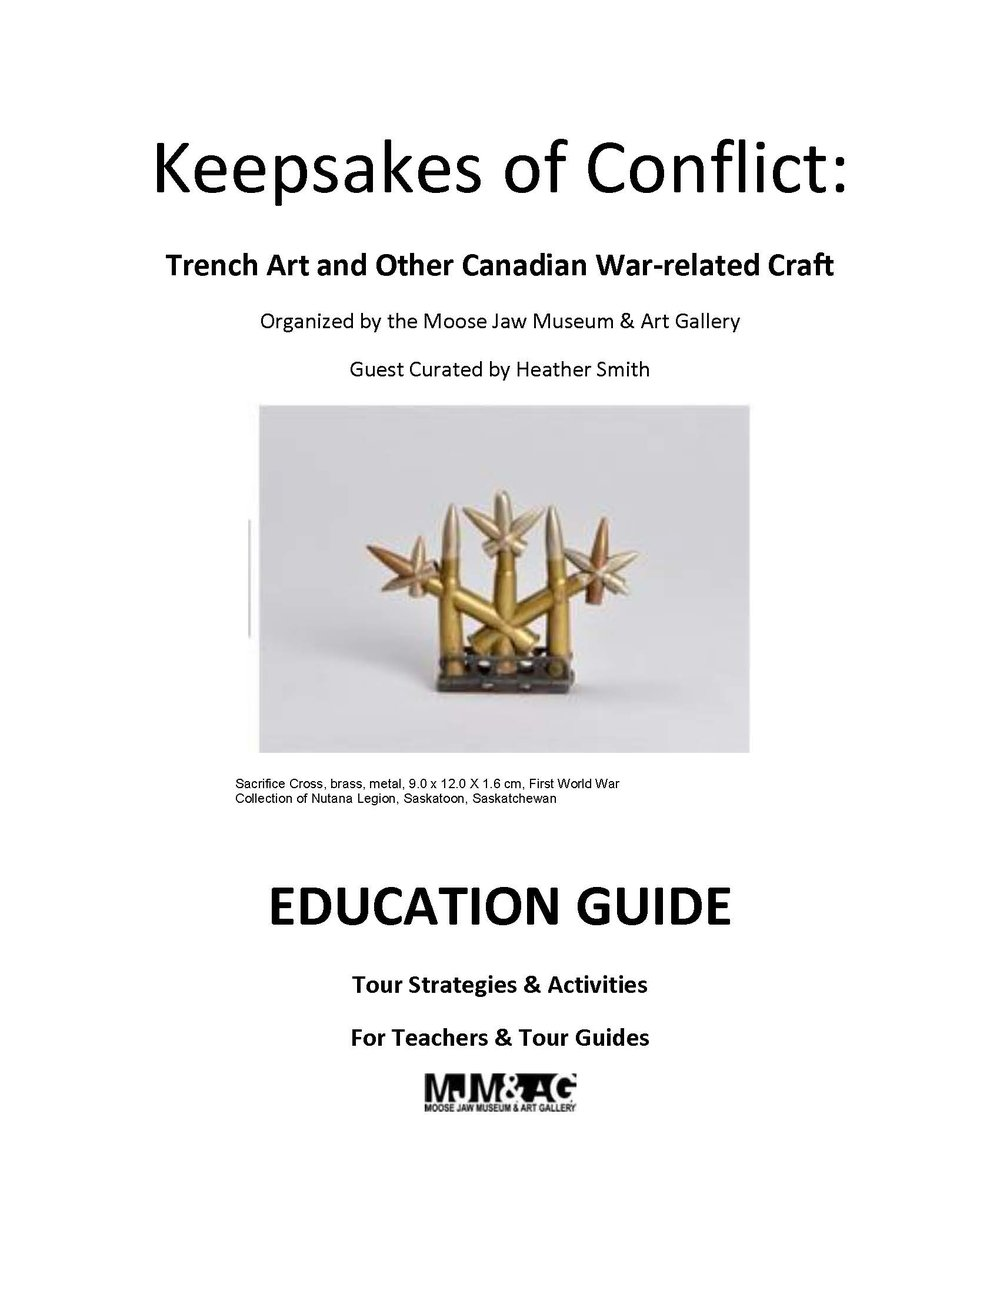 Keepsakes of Conflict Education Package_Page_01.jpg